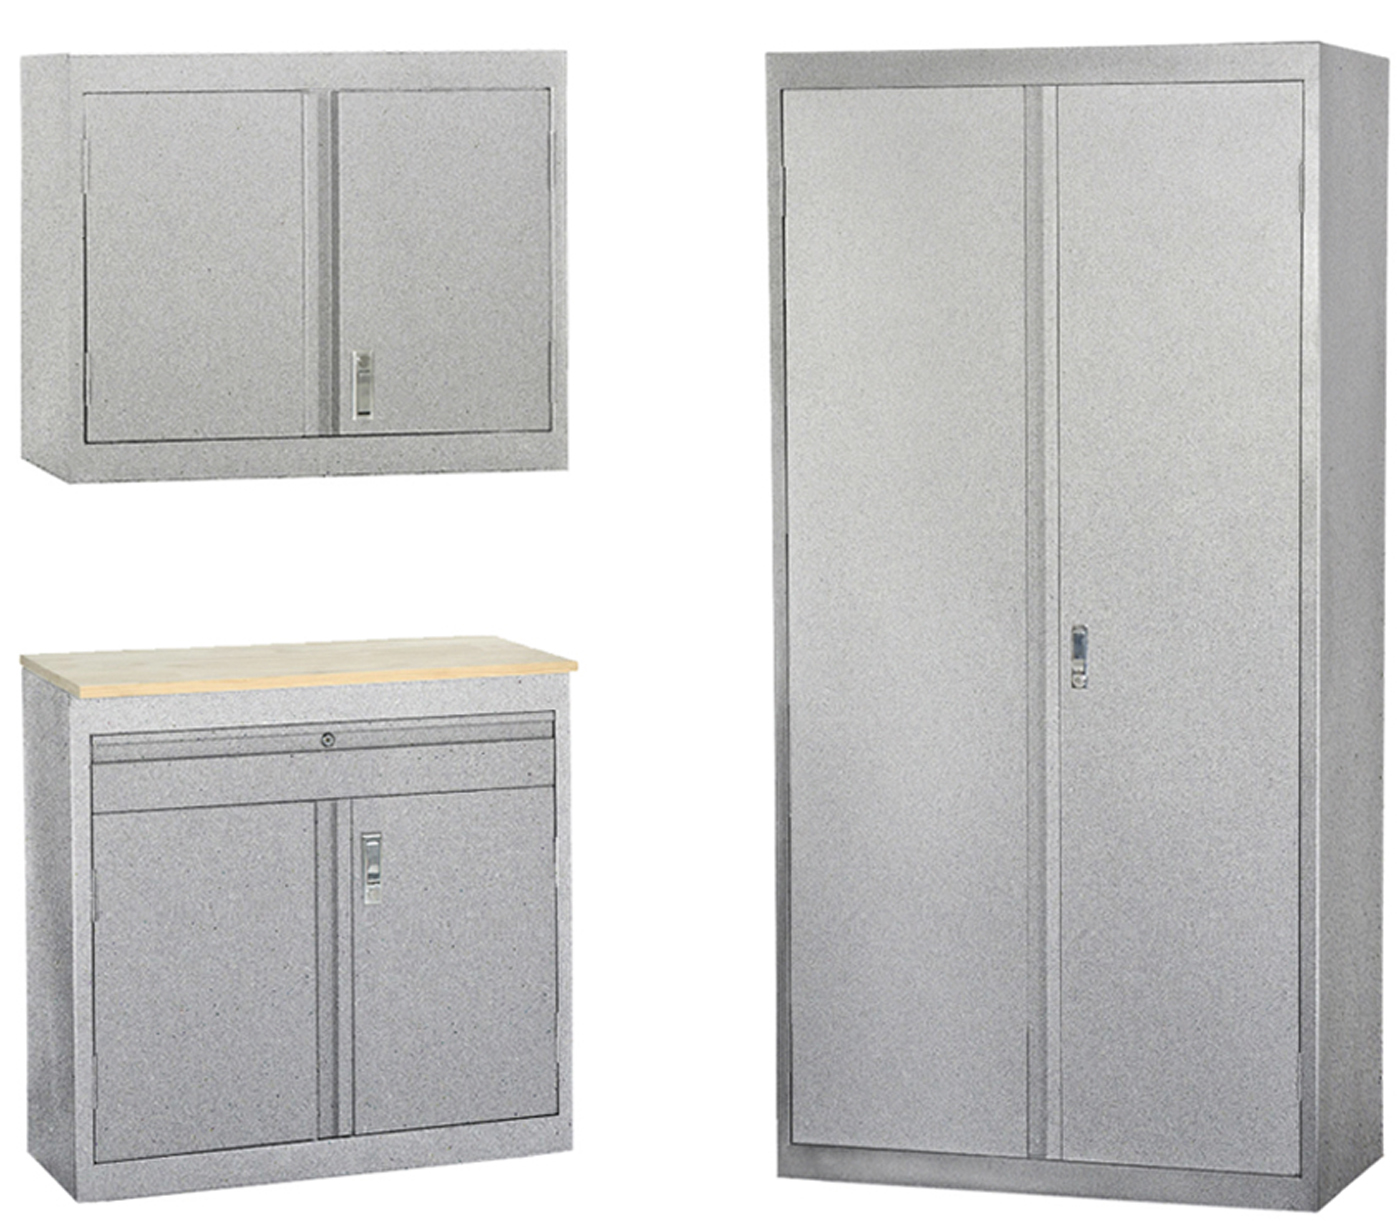 granite sandusky 3in1 garage storage system by edsal steel storage cabinet